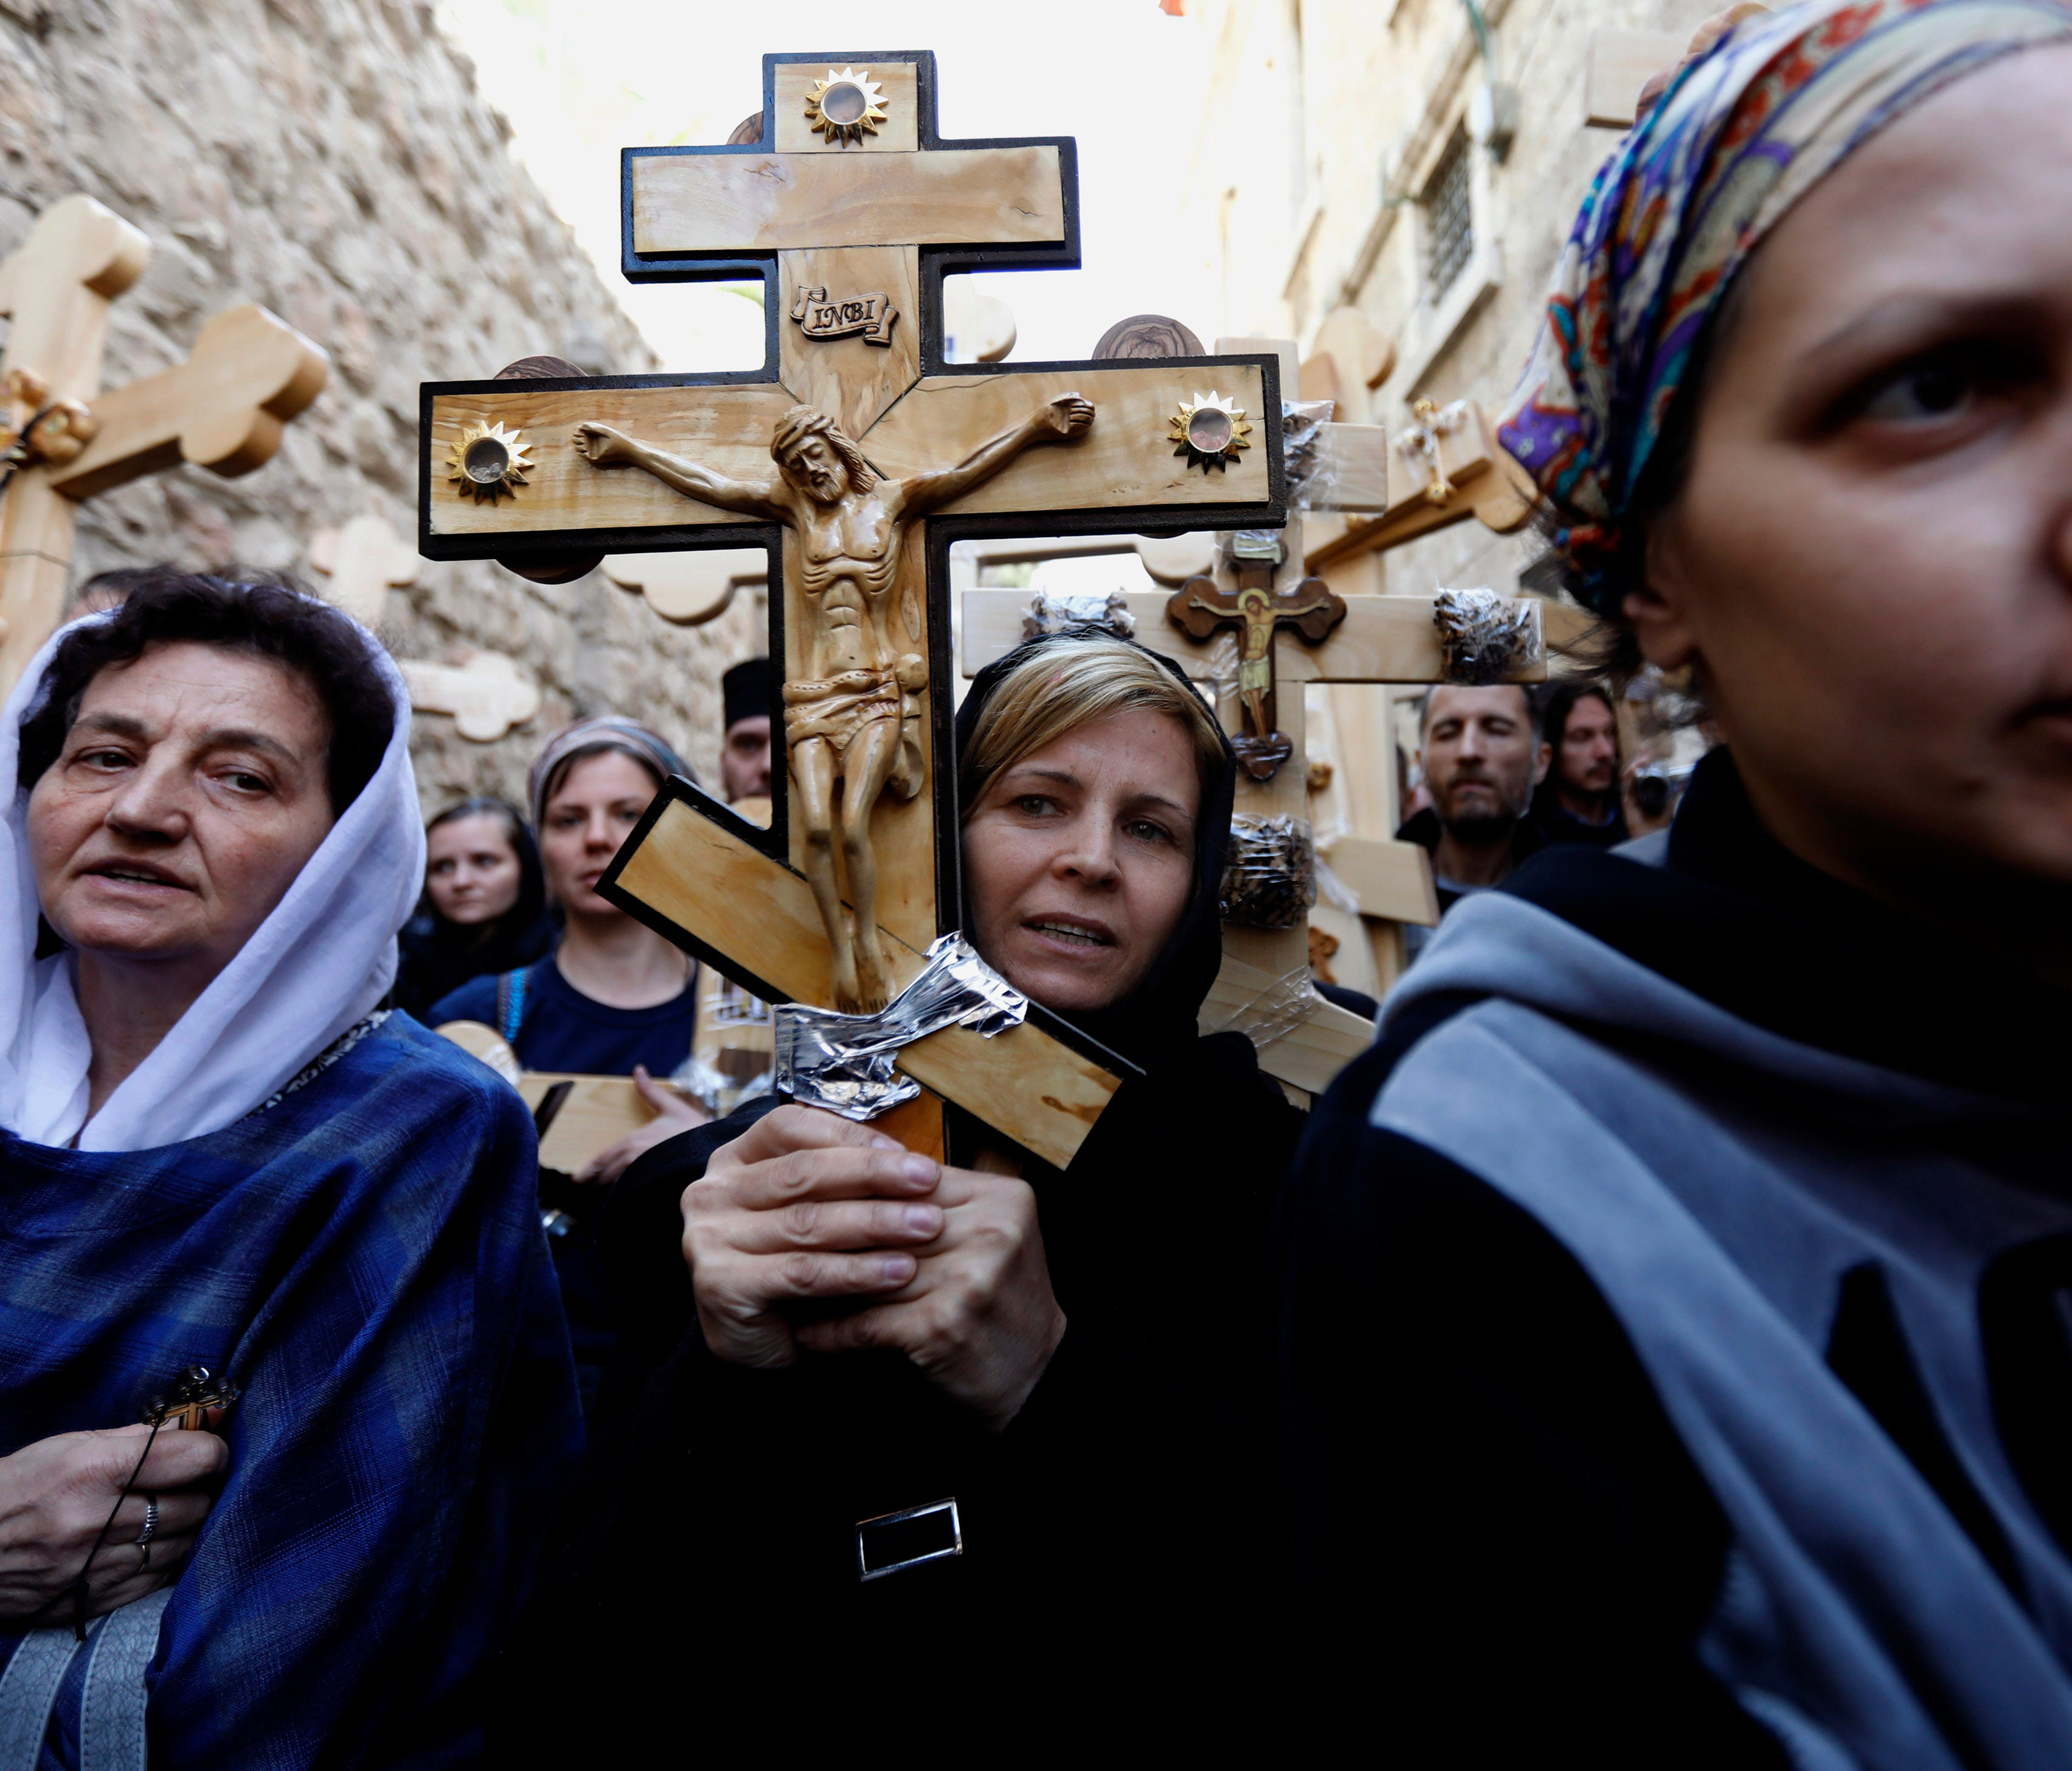 Christian pilgrims carry wooden crosses along the path where Jesus walked, now known as the